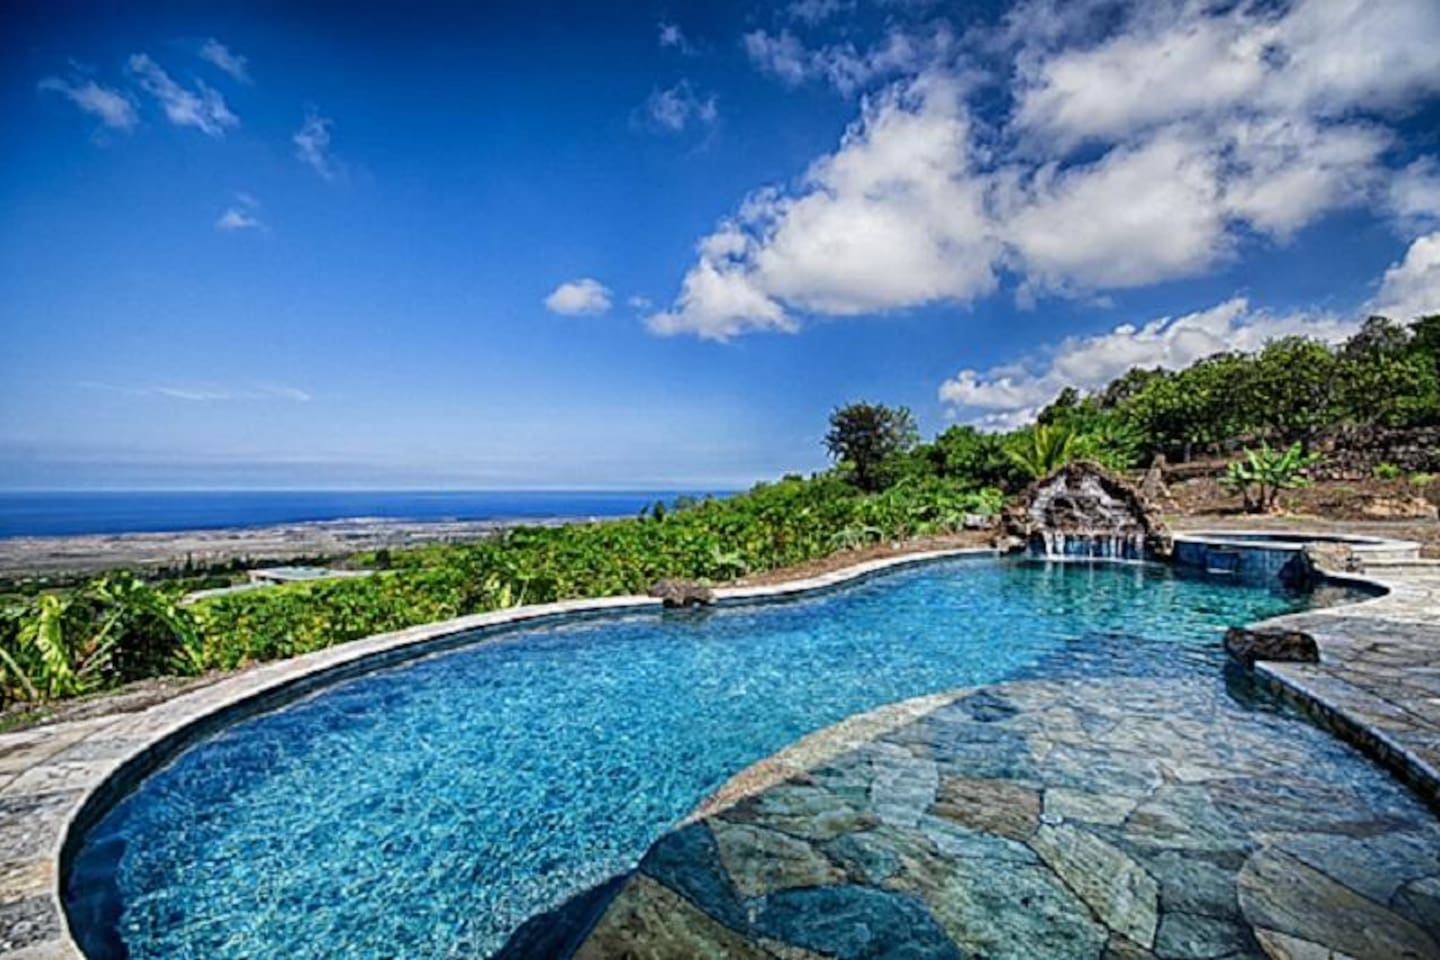 Piko Nani-Take a dip in this private turquoise pool with a view!